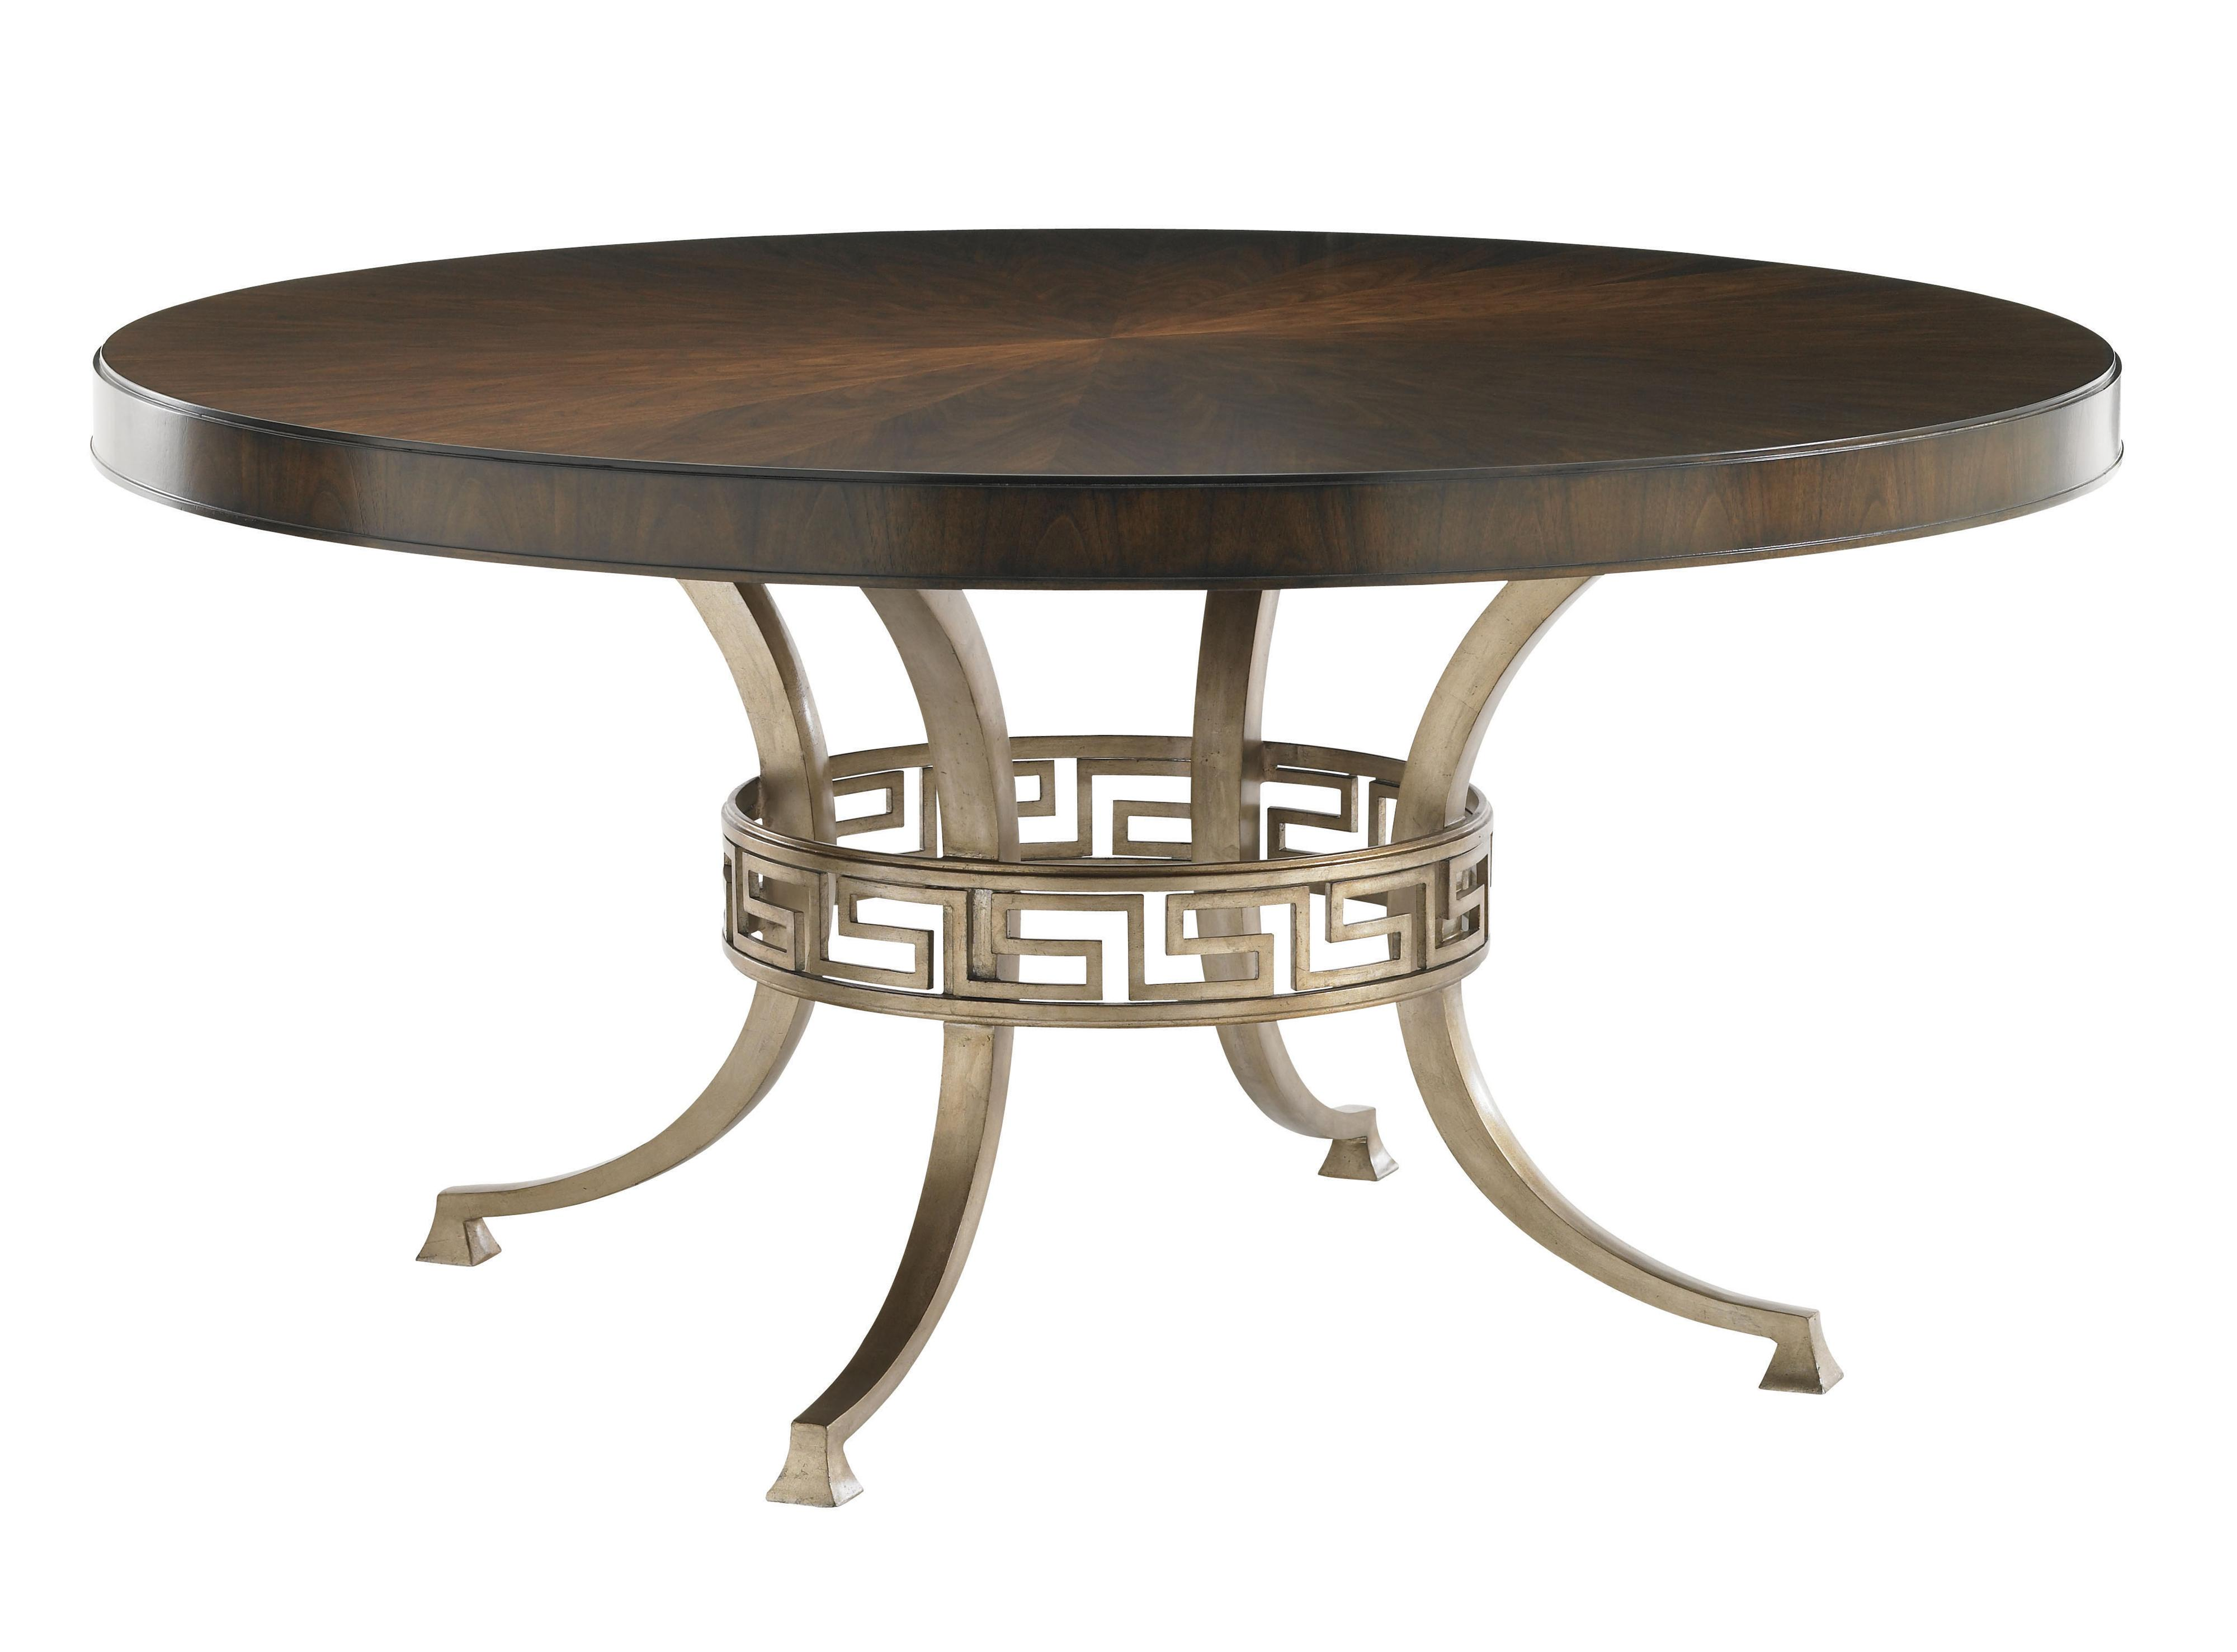 Tower Place Regis Round Dining Table by Lexington at Sprintz Furniture